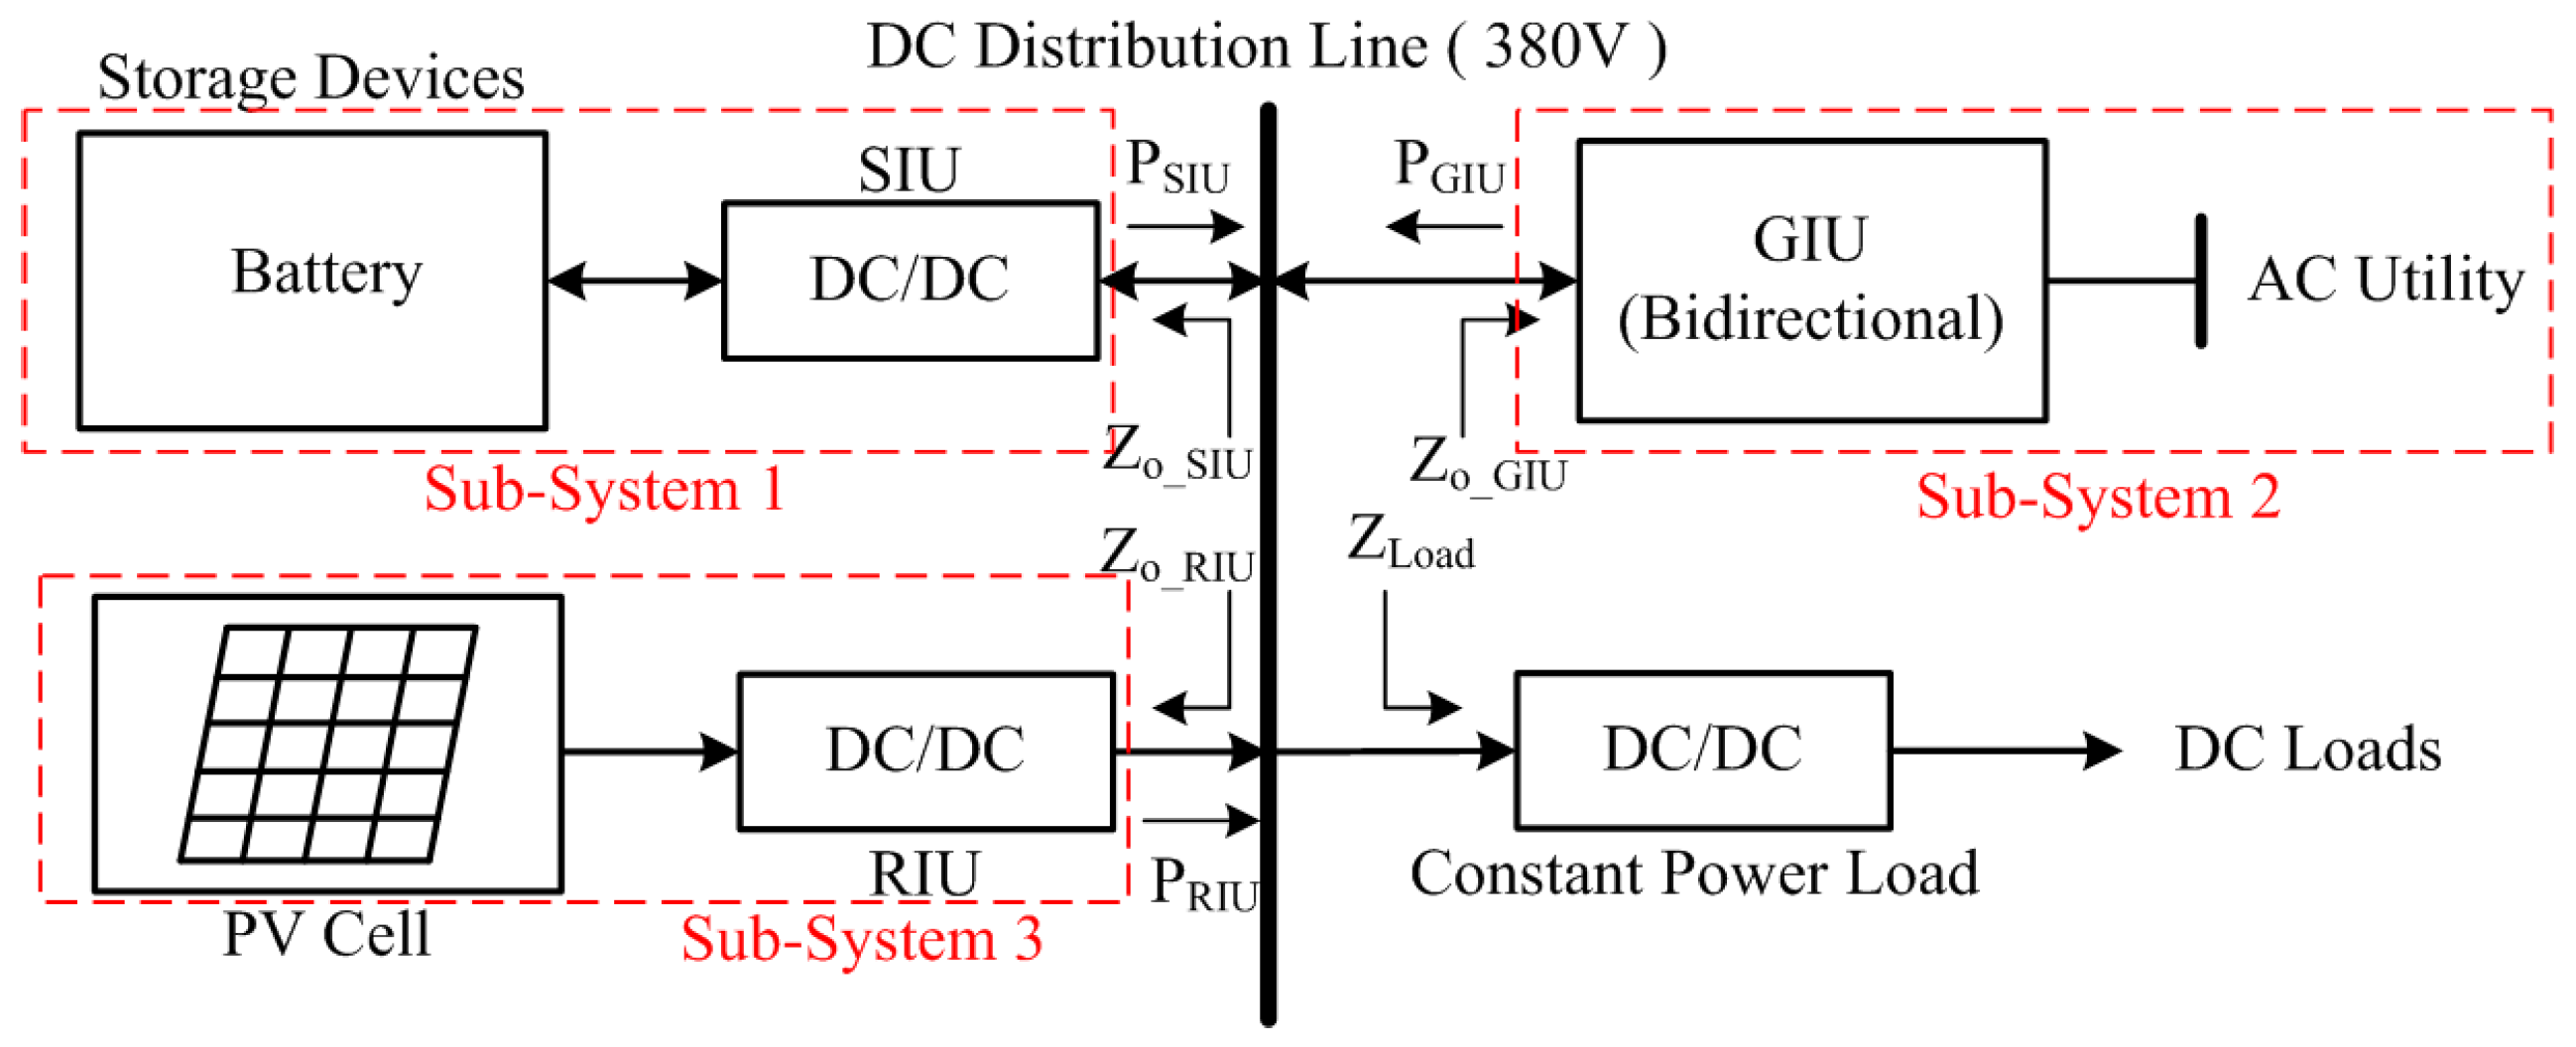 Energies Free Full Text Masterslave Based Hierarchical Control Shows You How To Build A Dcdc Schematichere39s Dc Circuit 09 00880 G001 Figure 1 Block Diagram Of The Proposed